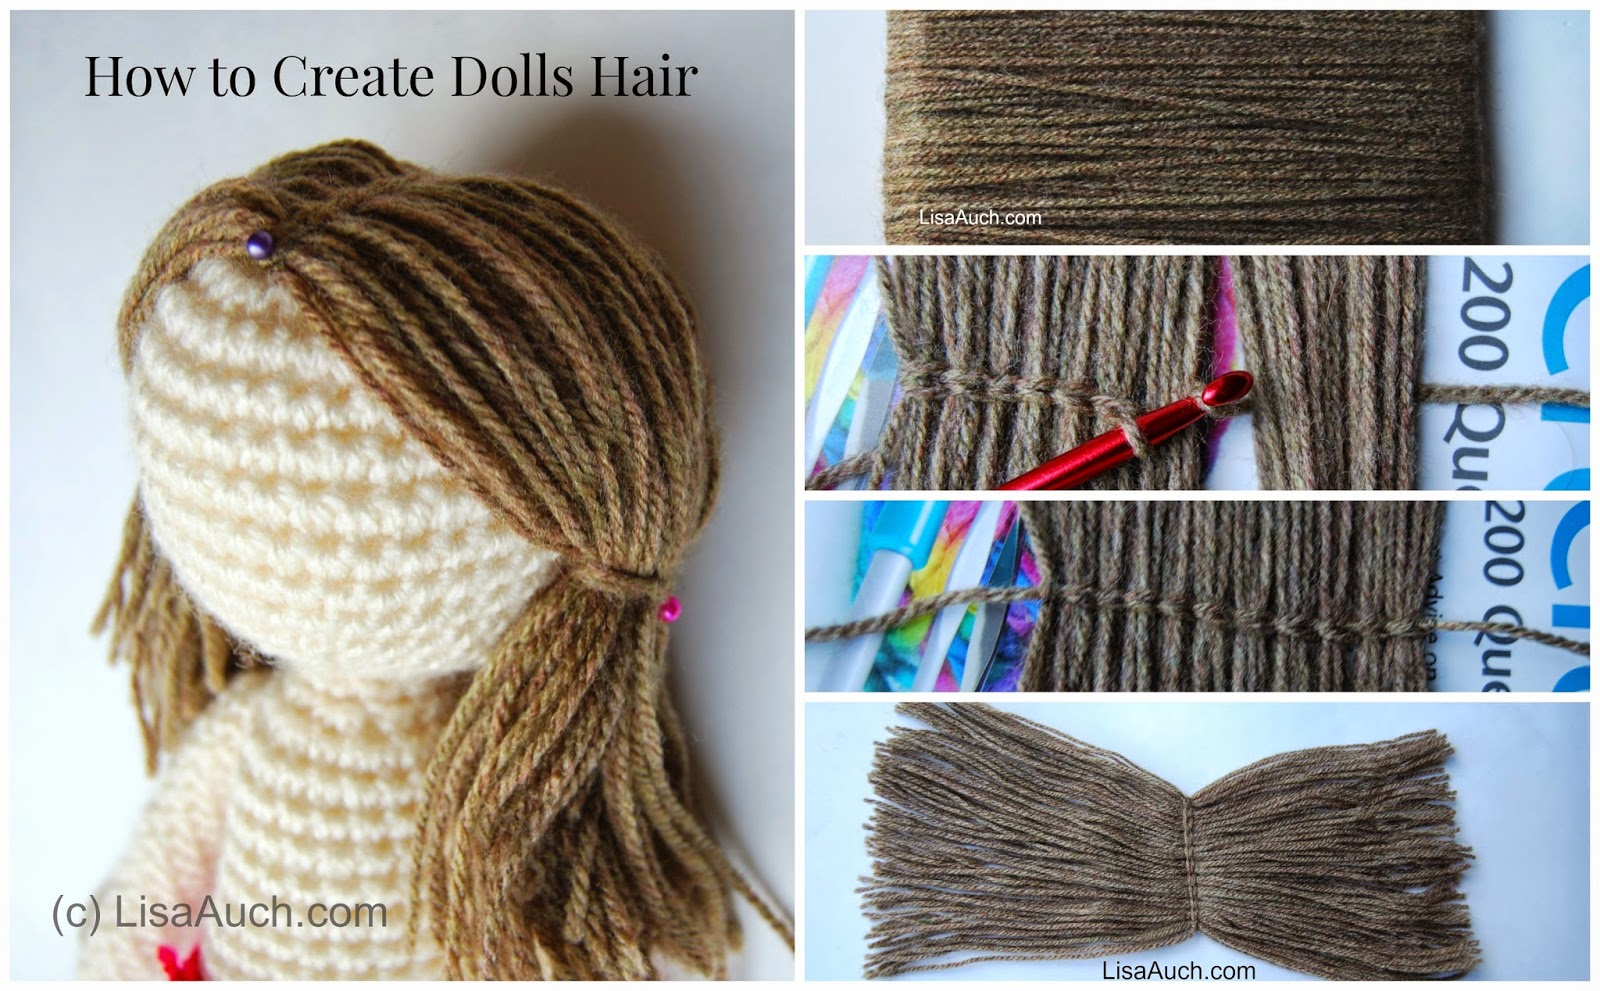 Crochet Patterns Hair : How to Crochet Dolls Hair (easy) Free Crochet Patterns and Designs ...